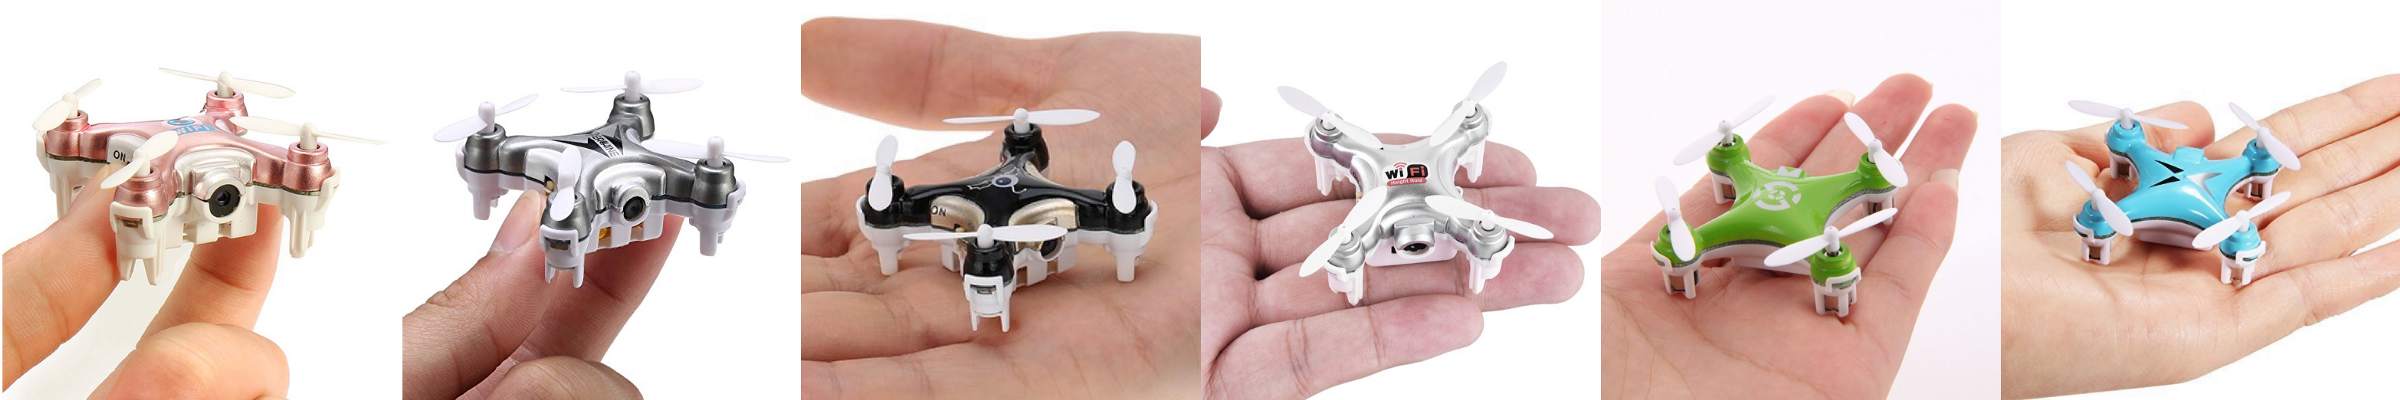 Building a Quadcopter Controller for iOS and Open-Sourcing the